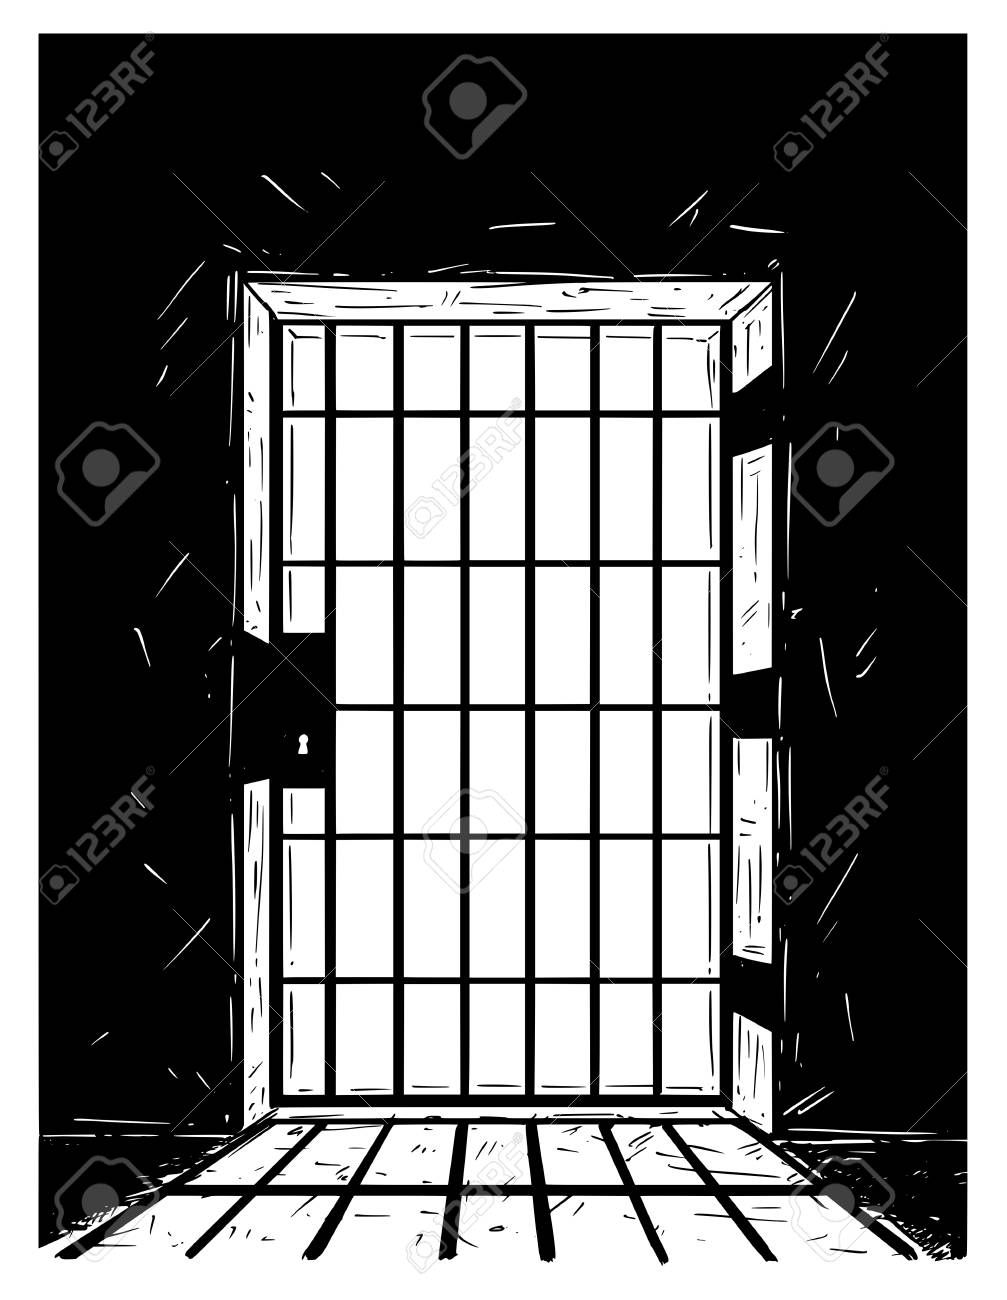 Cartoon Vector Doodle Drawing Illustration Of Prison Or Jail Door Made From Iron Bars Casting Shadow Sponsored Drawing Prison Drawings Prison Art Jail